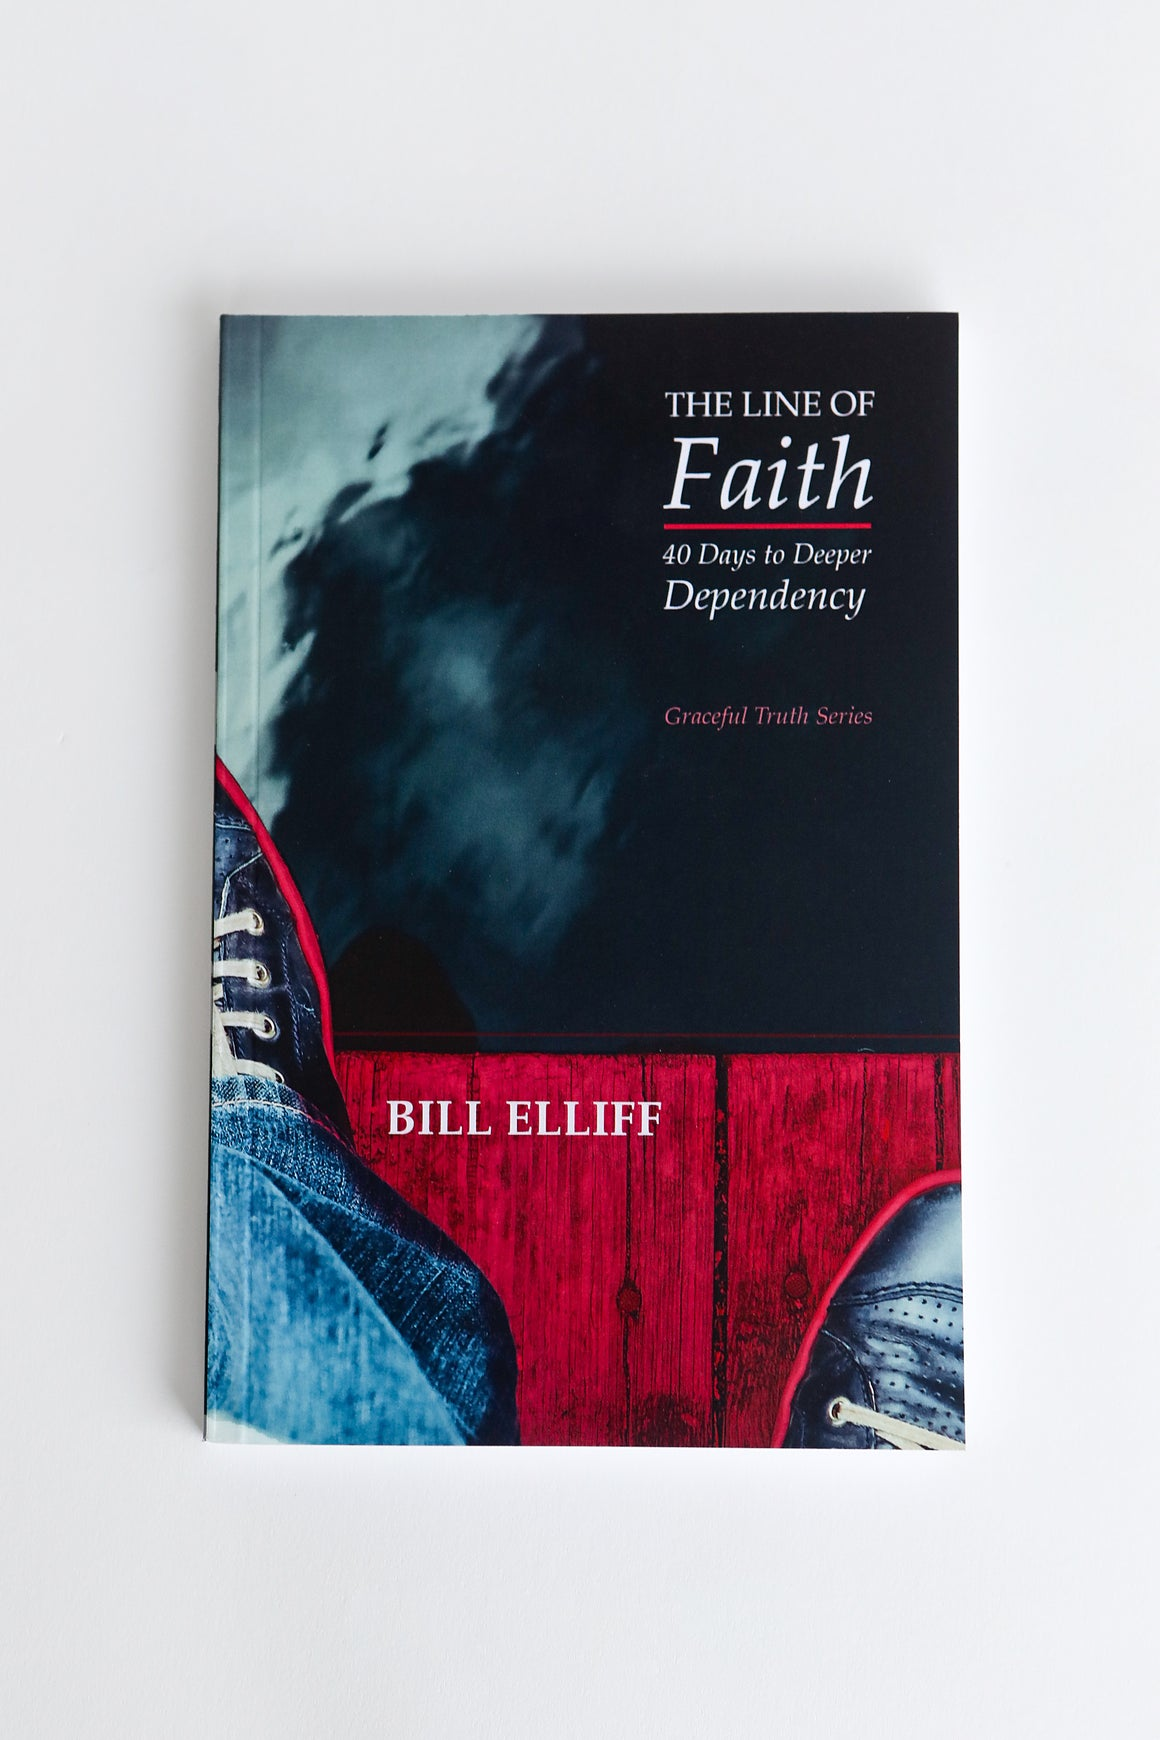 The Line of Faith: 40 Days to Deeper Deependency-Bill Elliff